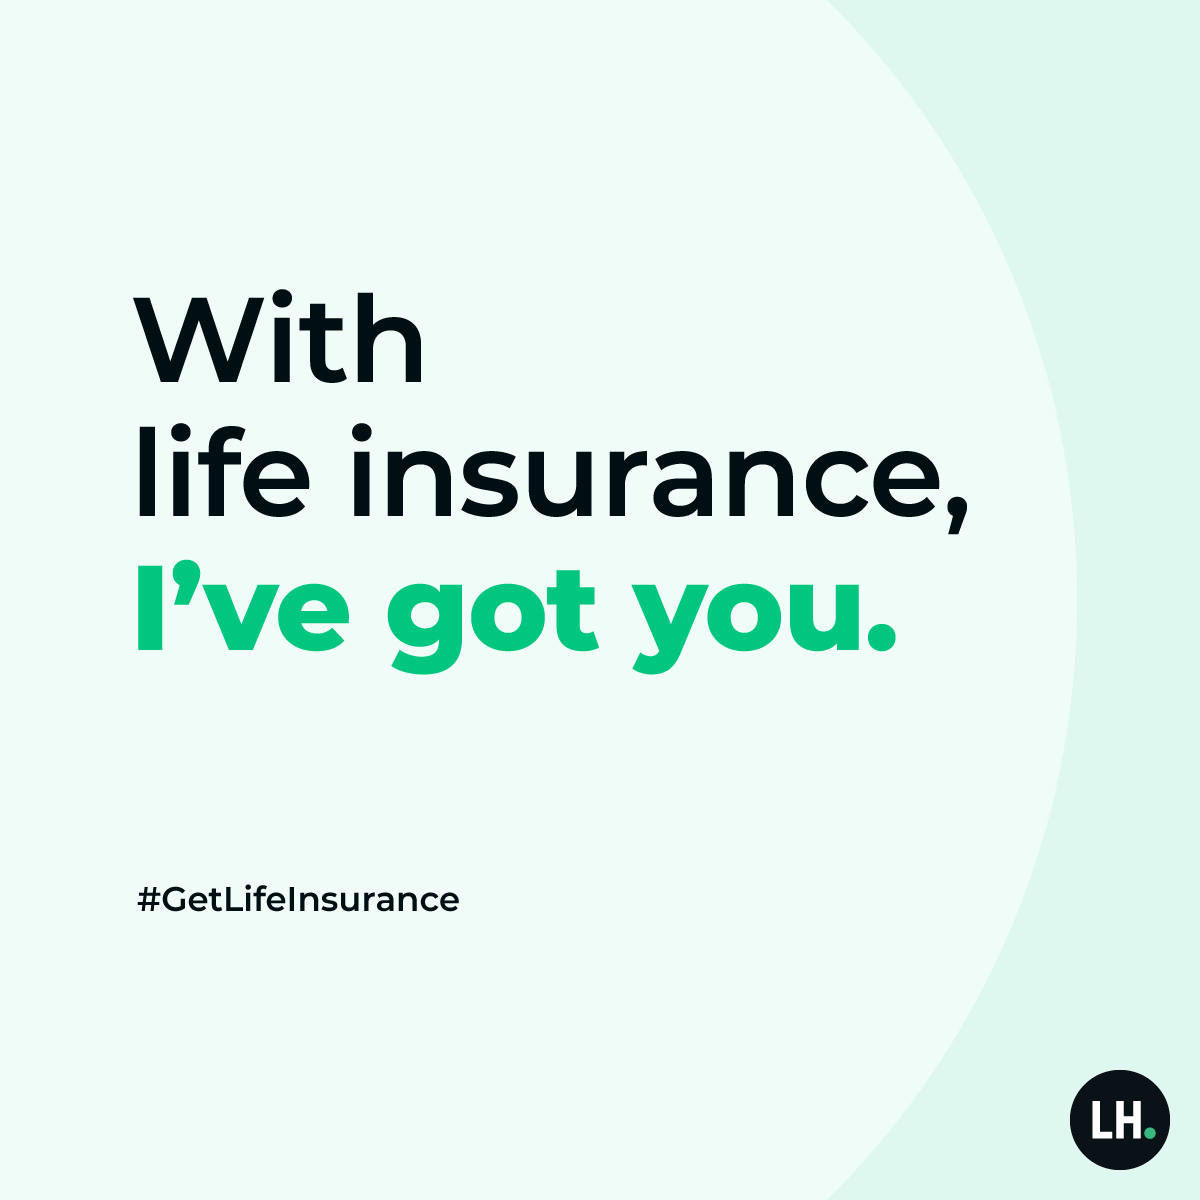 With life insurance, I've got you.